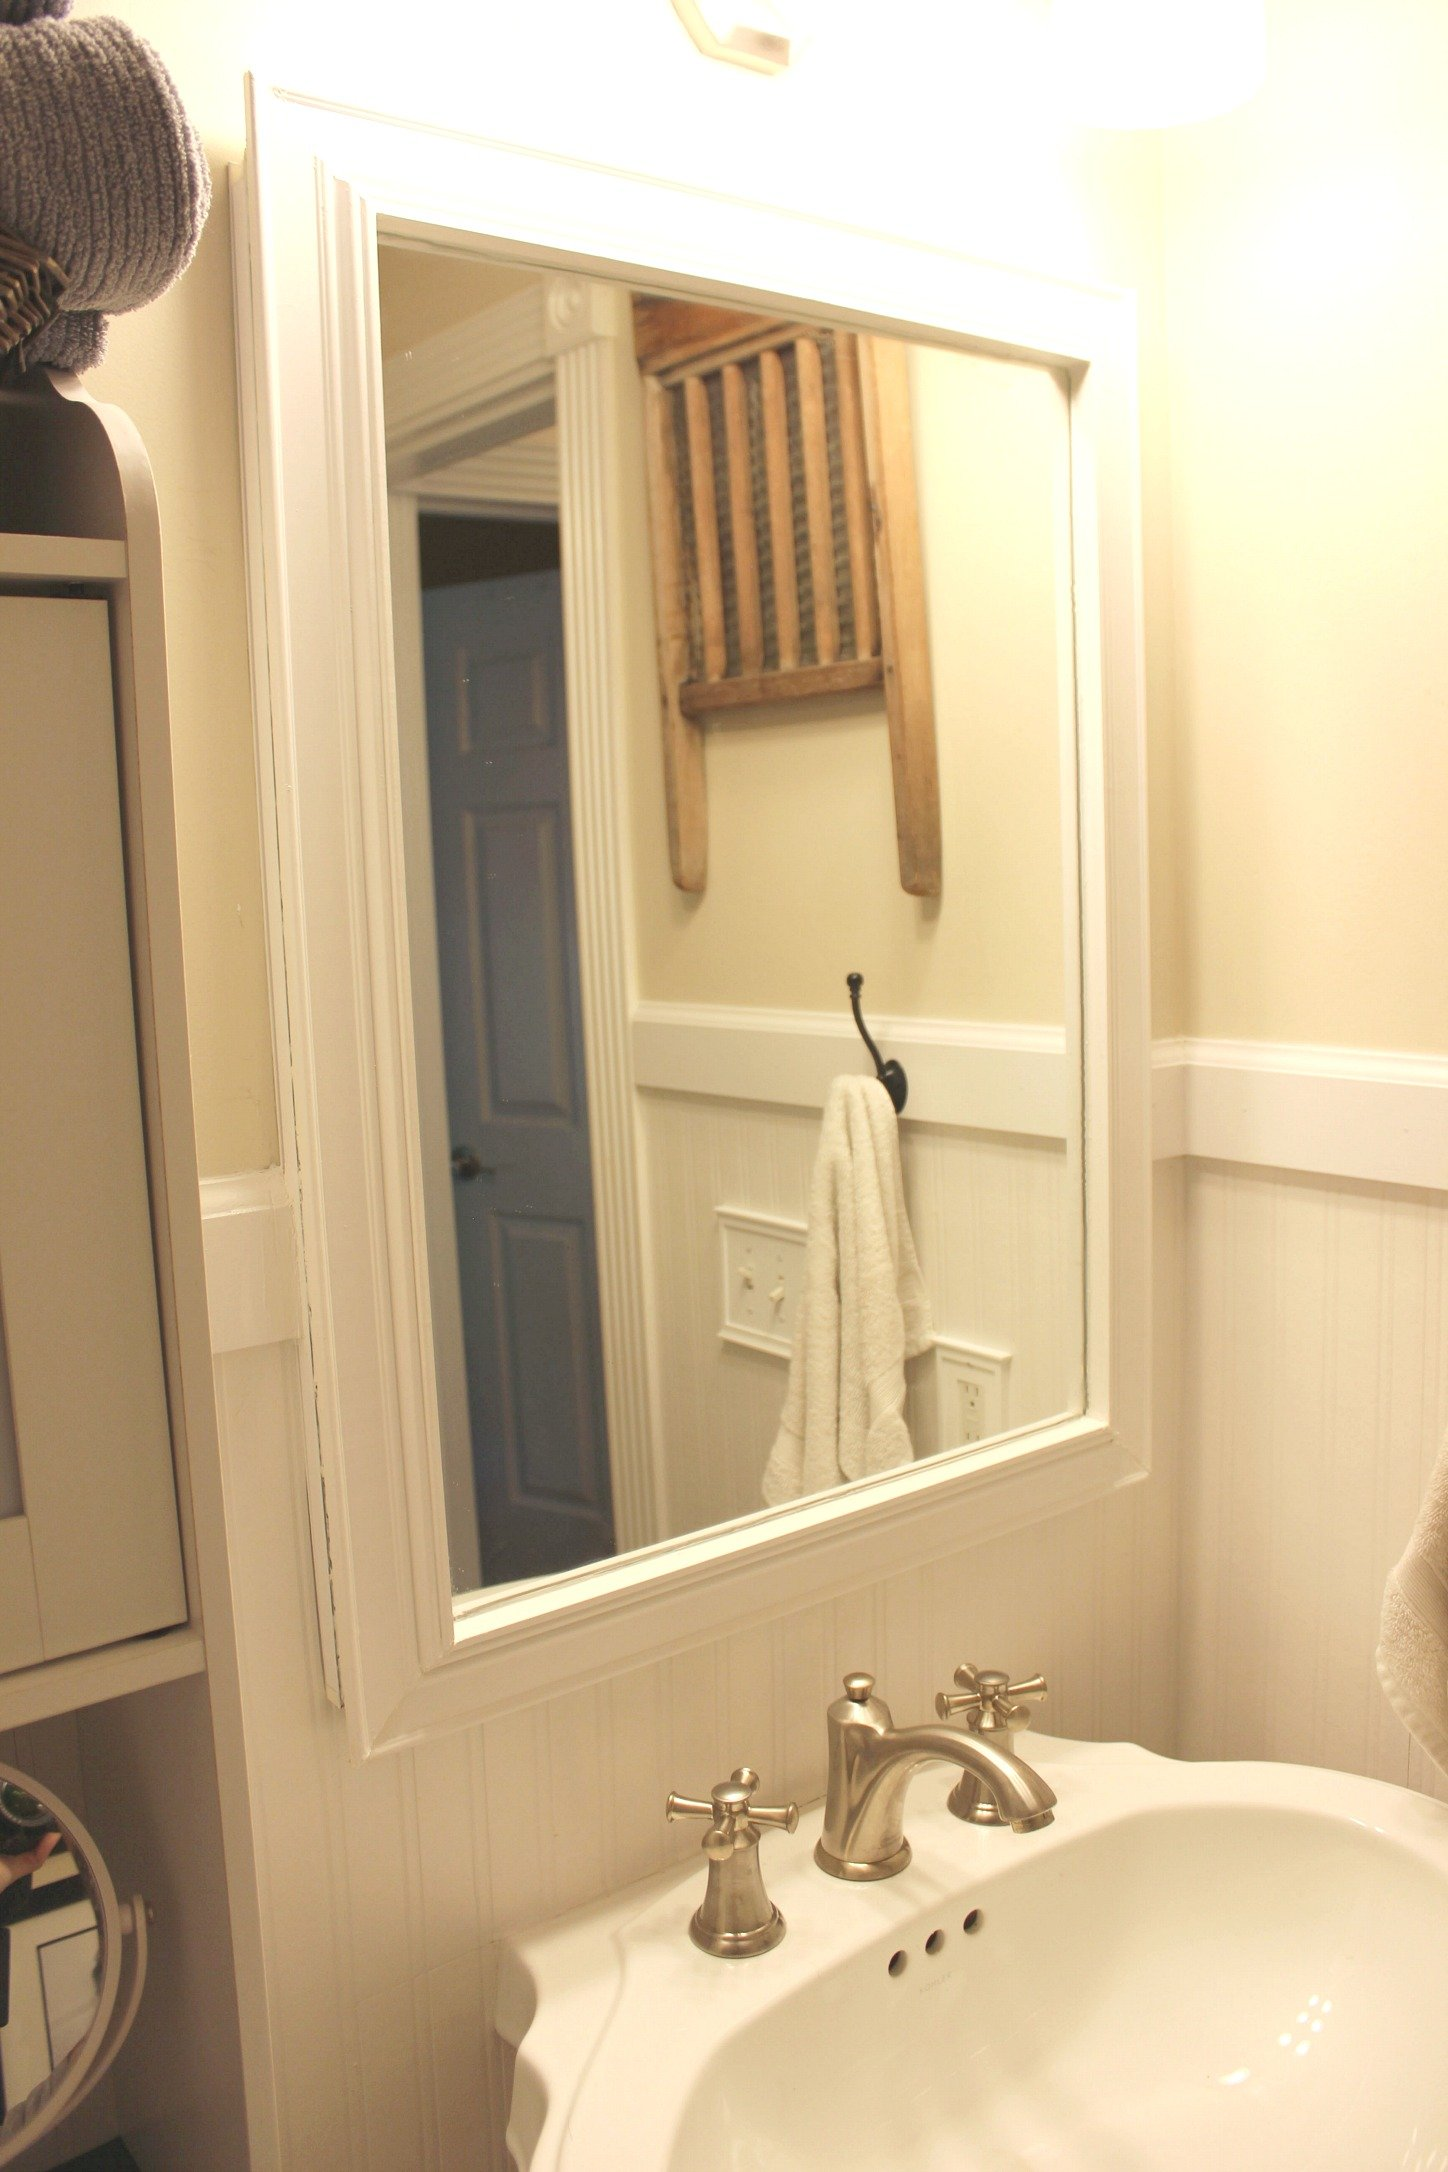 Frame a small bathroom mirror with trim and adhesive caulk to make ...